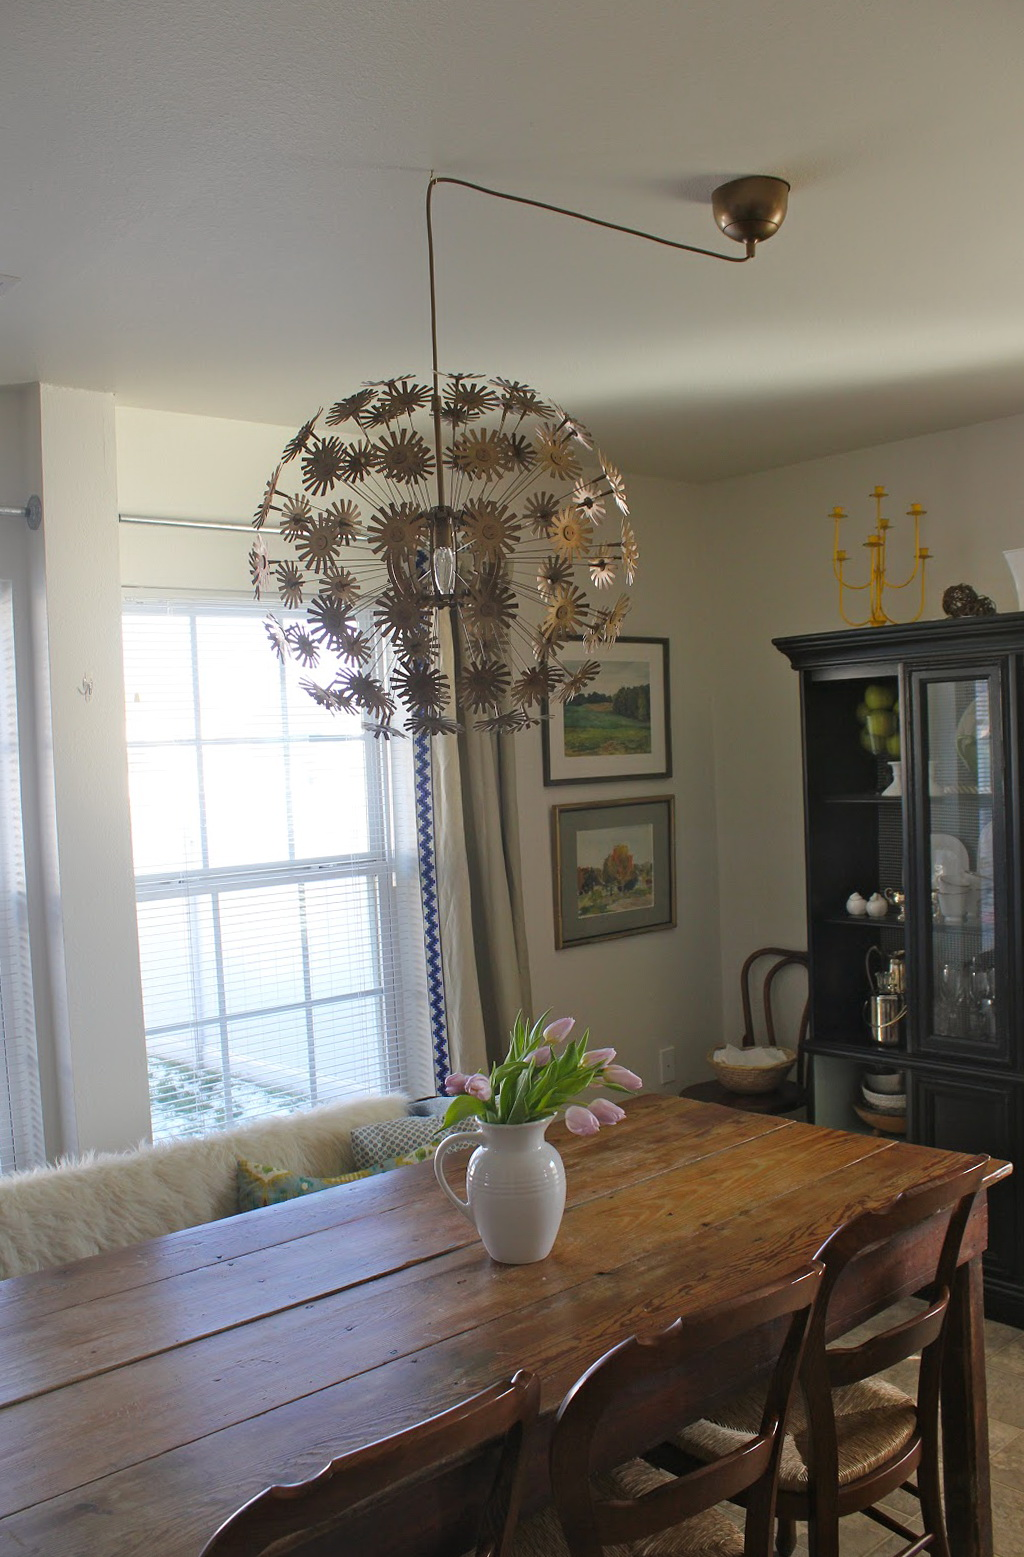 Hanging A Chandelier Off Center  Home Design Ideas